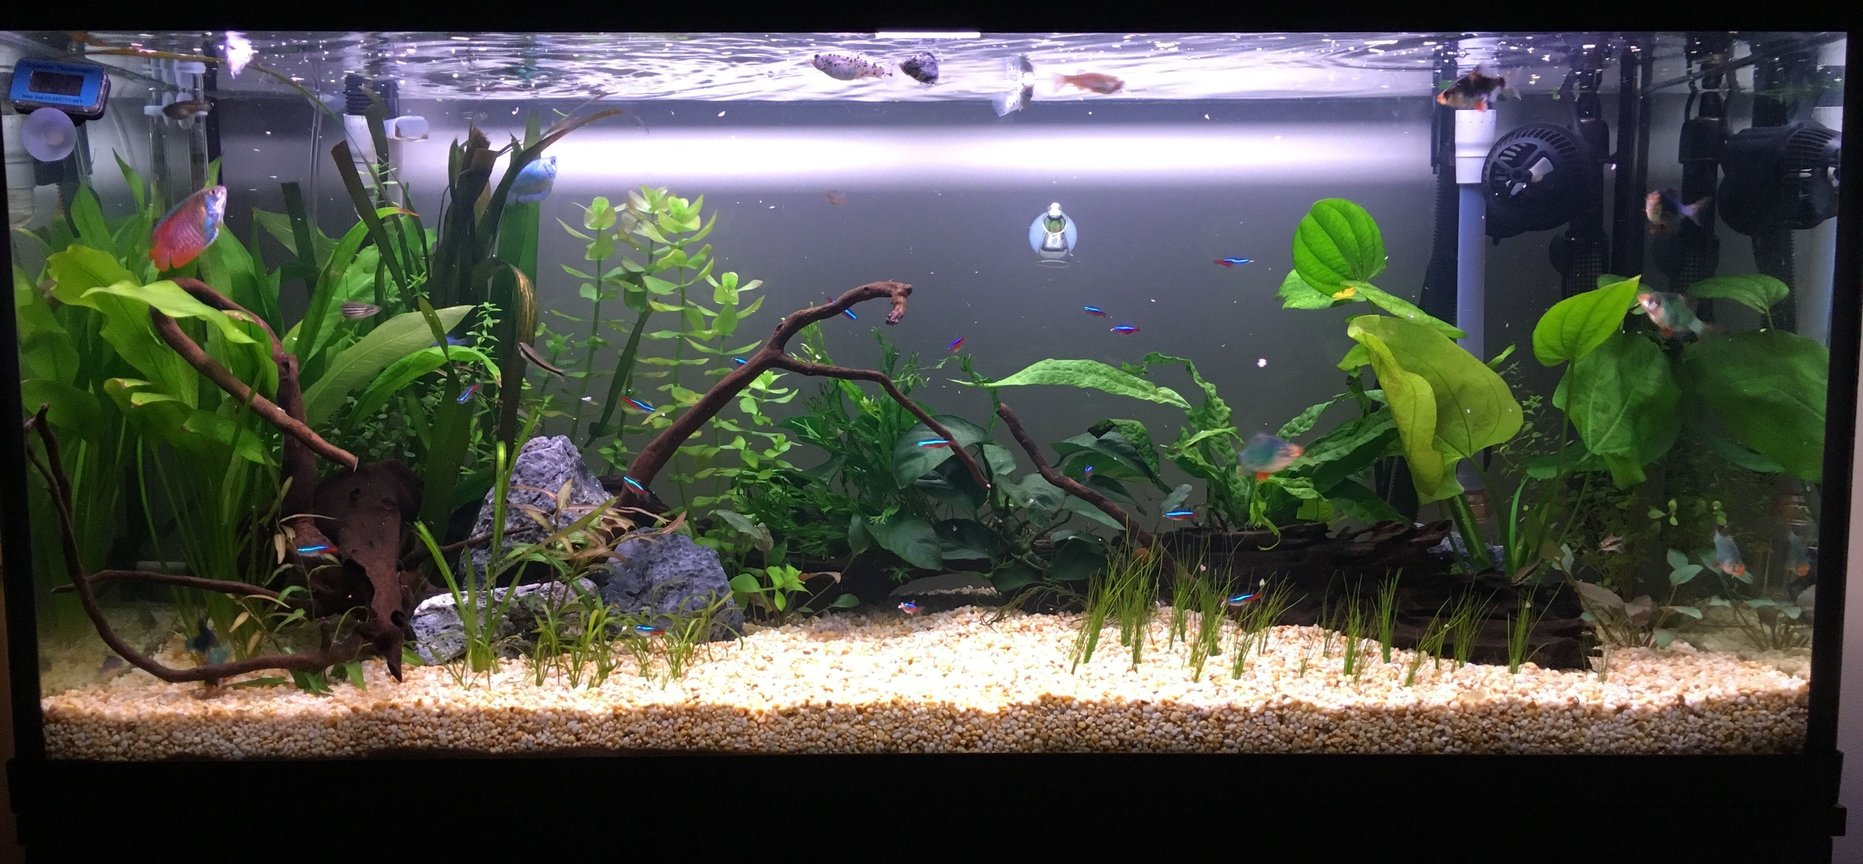 32 gallons planted tank (mostly live plants and fish) - New tank. 1 month old